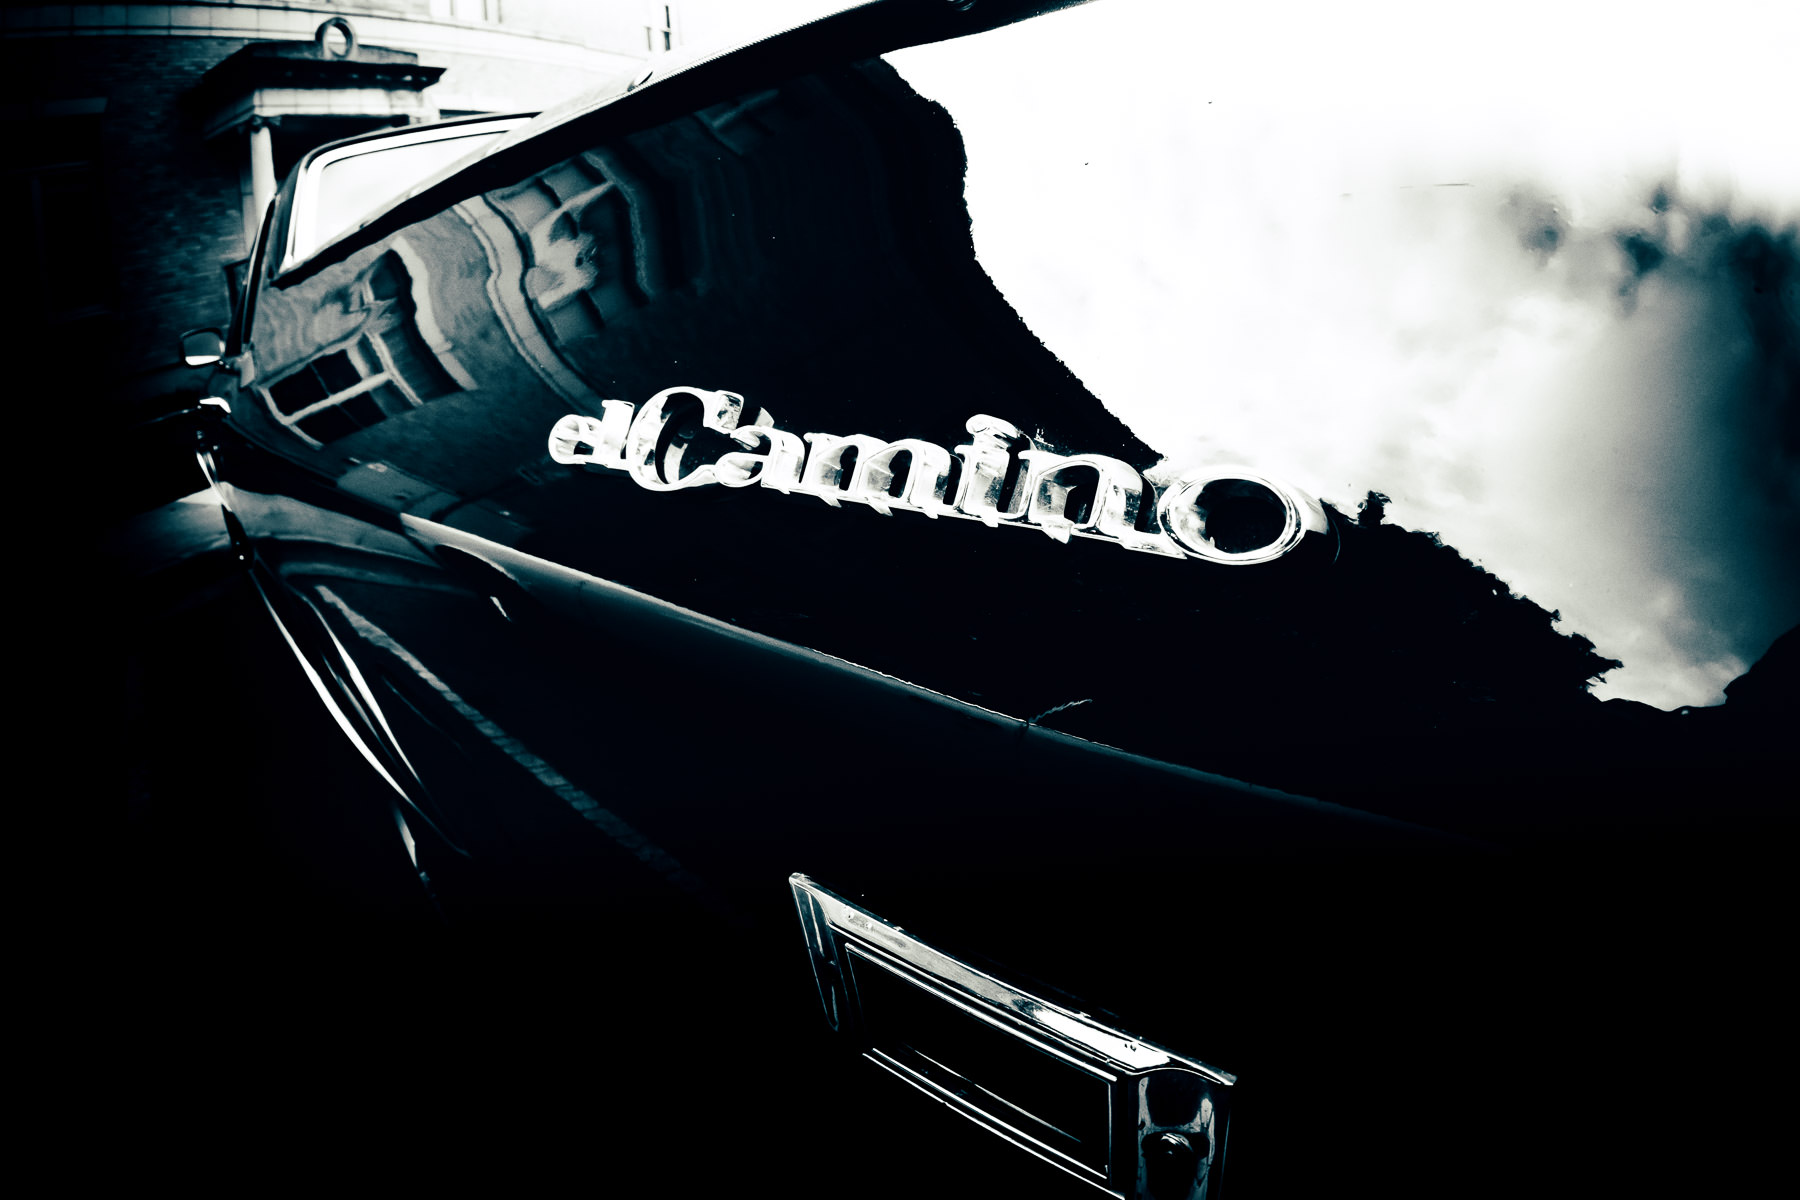 Detail of a Chevrolet El Camino, spotted in Downtown McKinney, Texas.